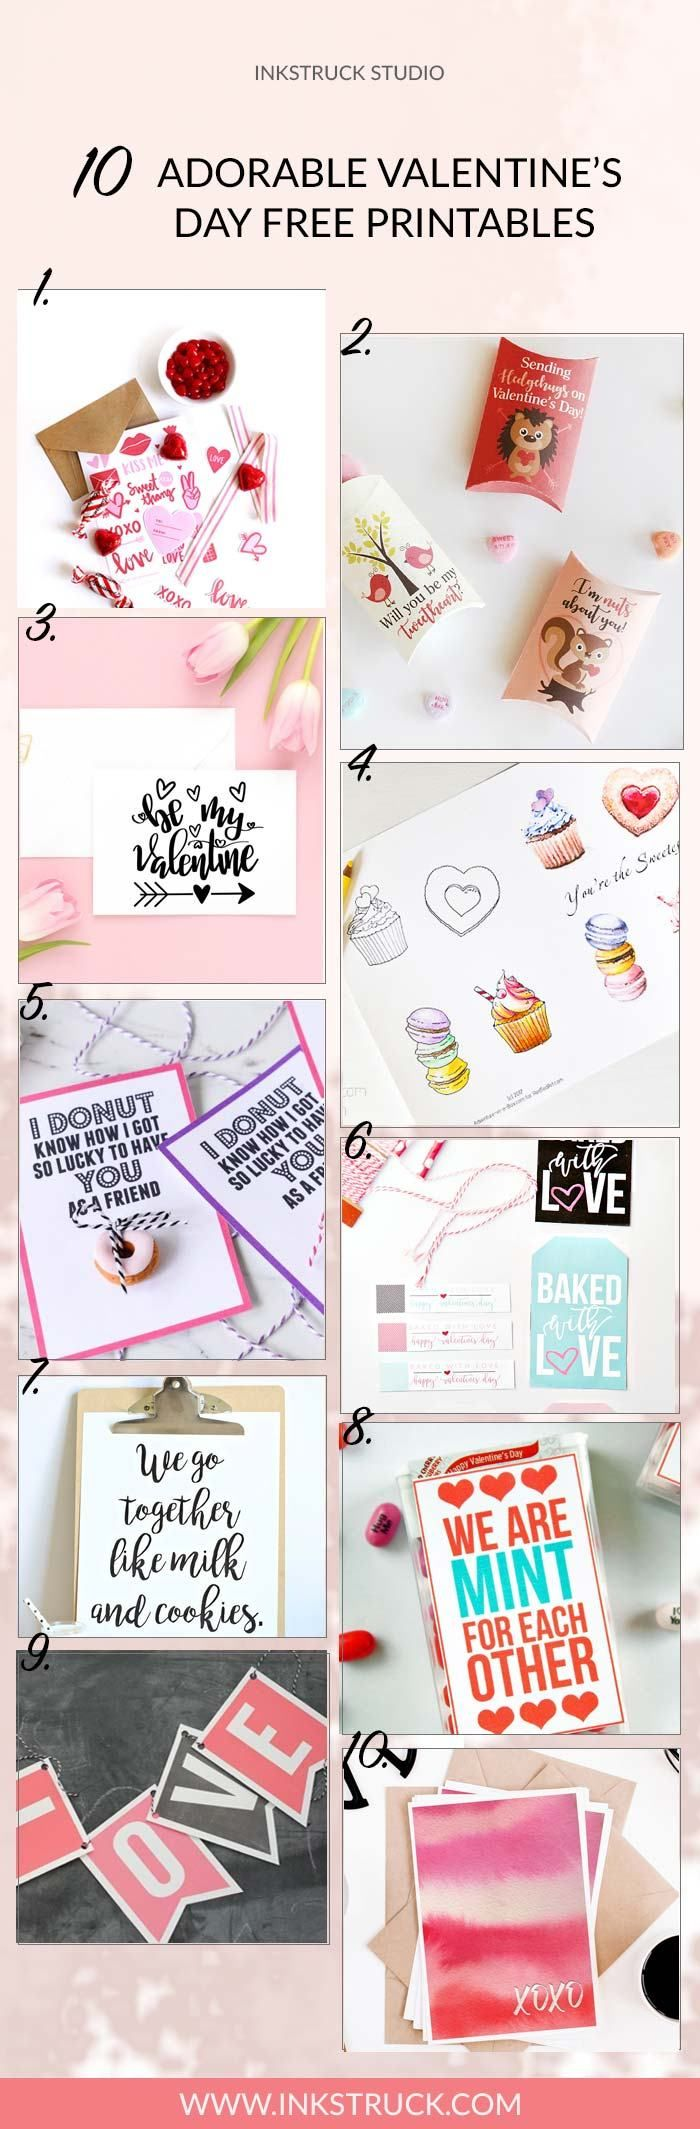 These ridiculously adorable Valentine's Day free printables will make things super easy for you if you're doing something special for your loved ones. - Inkstruck Studio